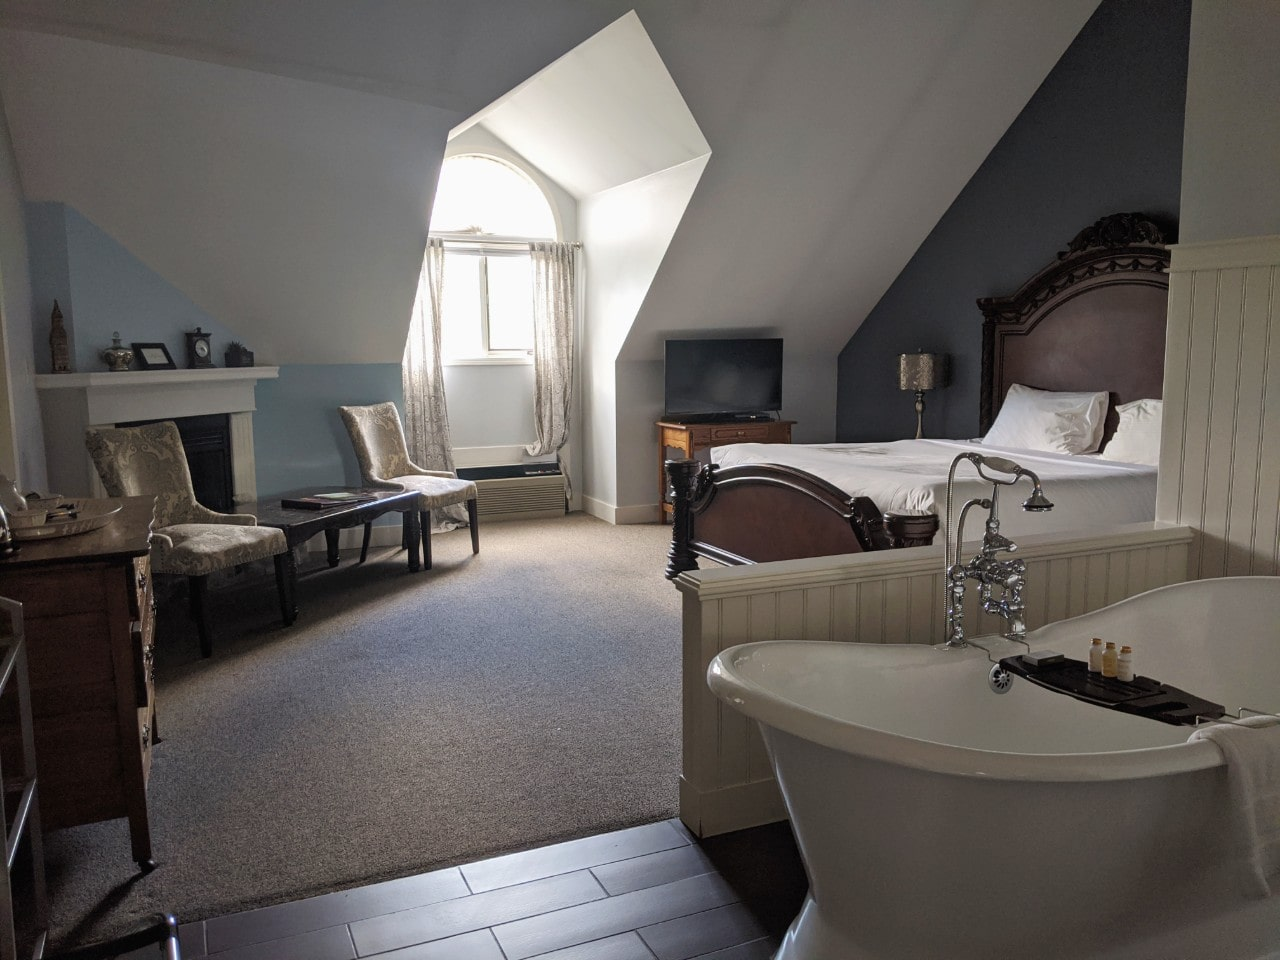 Georgetown Inn room with large king size bed, clawfoot bathtub and fireplace